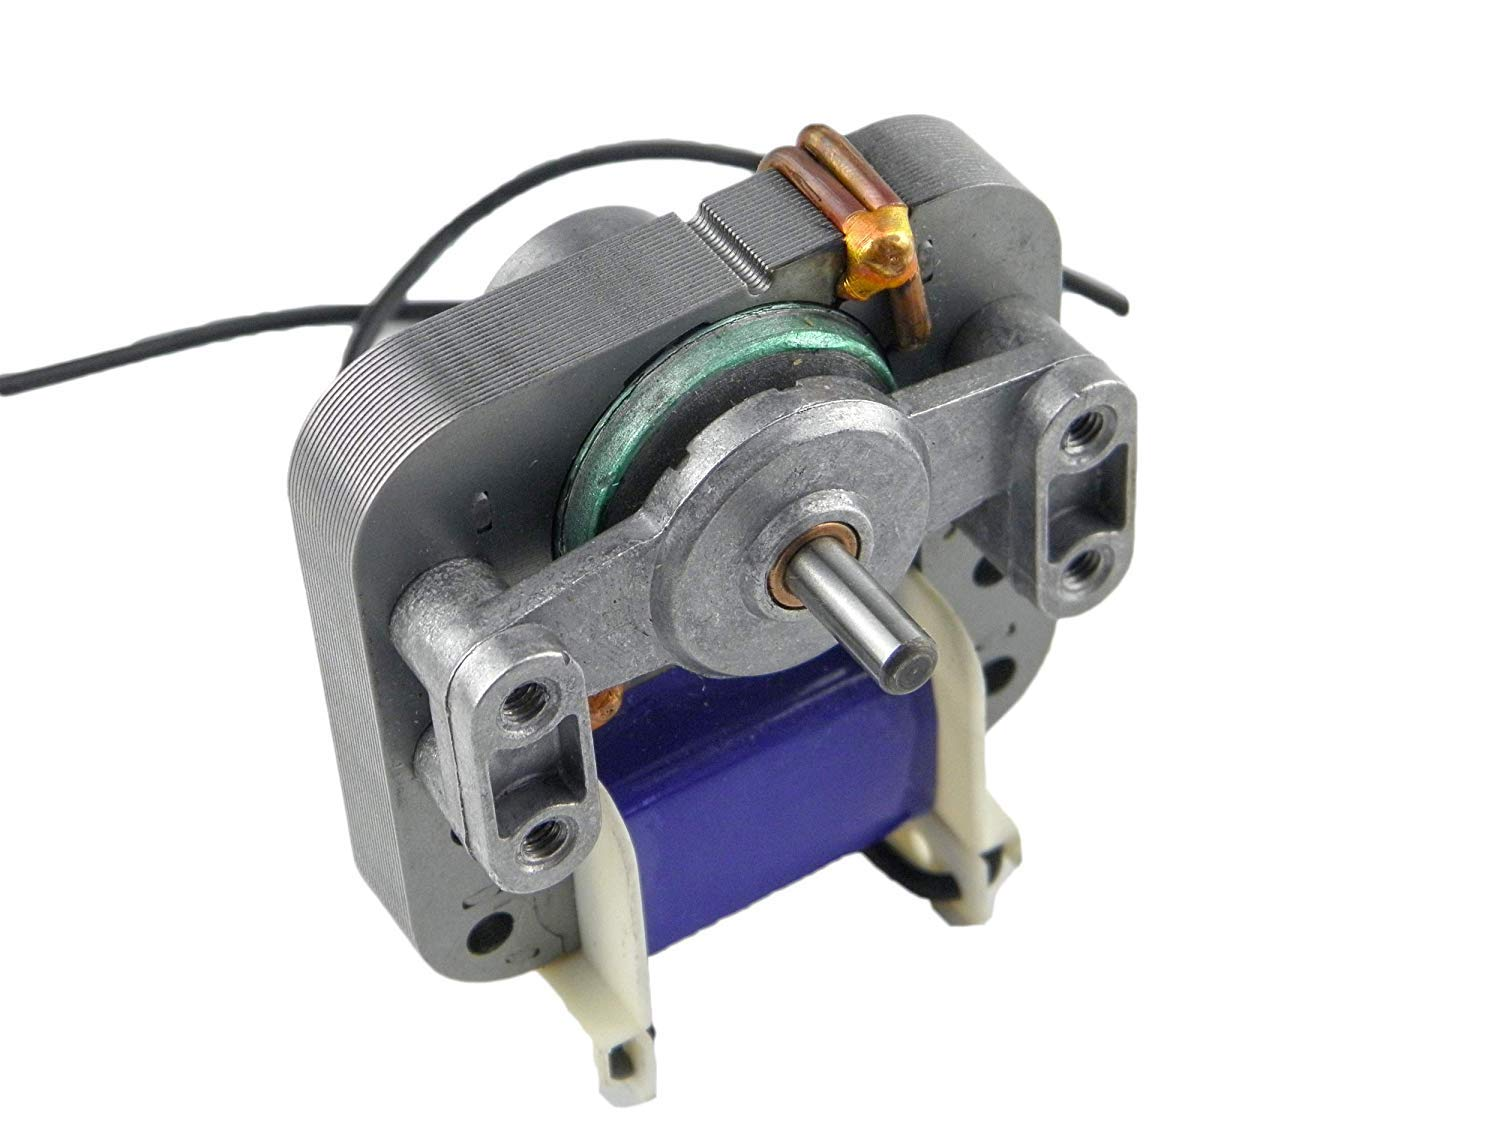 CHANCS 220V AC Shade Pole Motor 2700RPM for Microwave oven,Refrigerator,Ventilation Fan Asynchronous Motor Low Noise